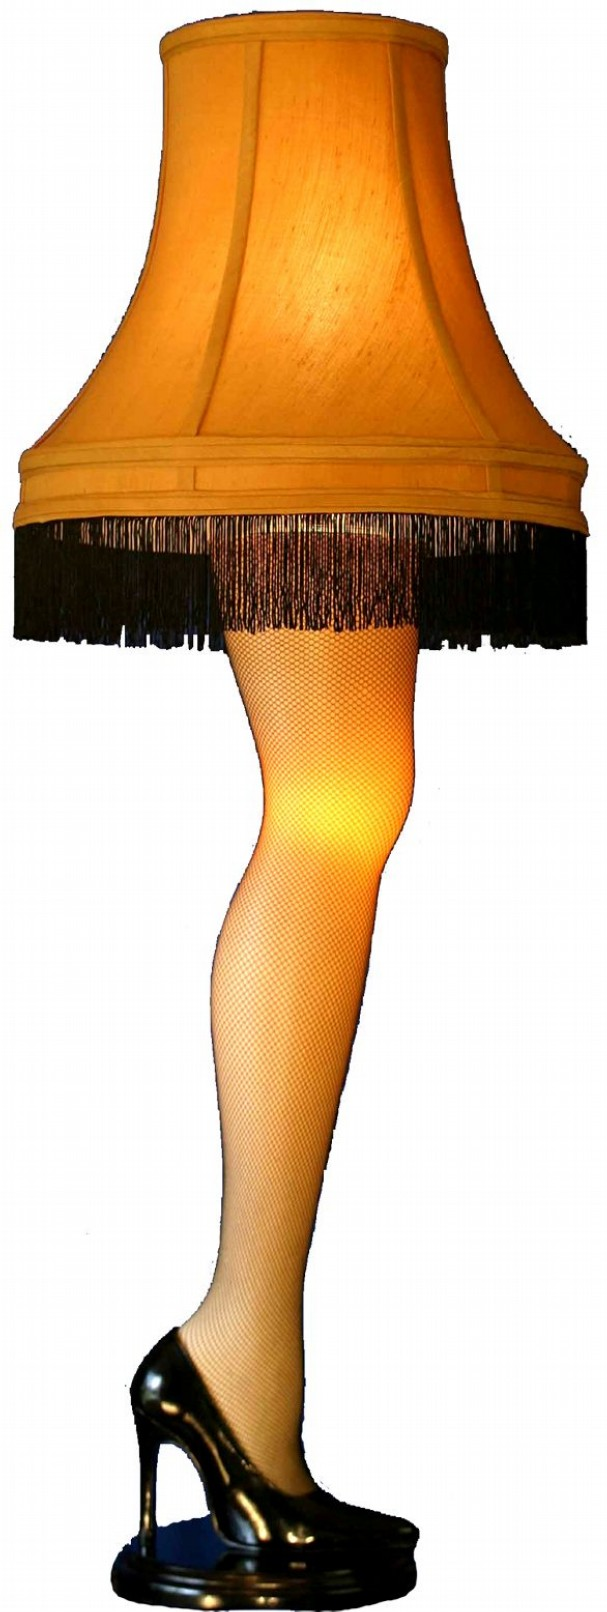 607x1612 The Leg Lamp A Pop Culture Icon From The Movie